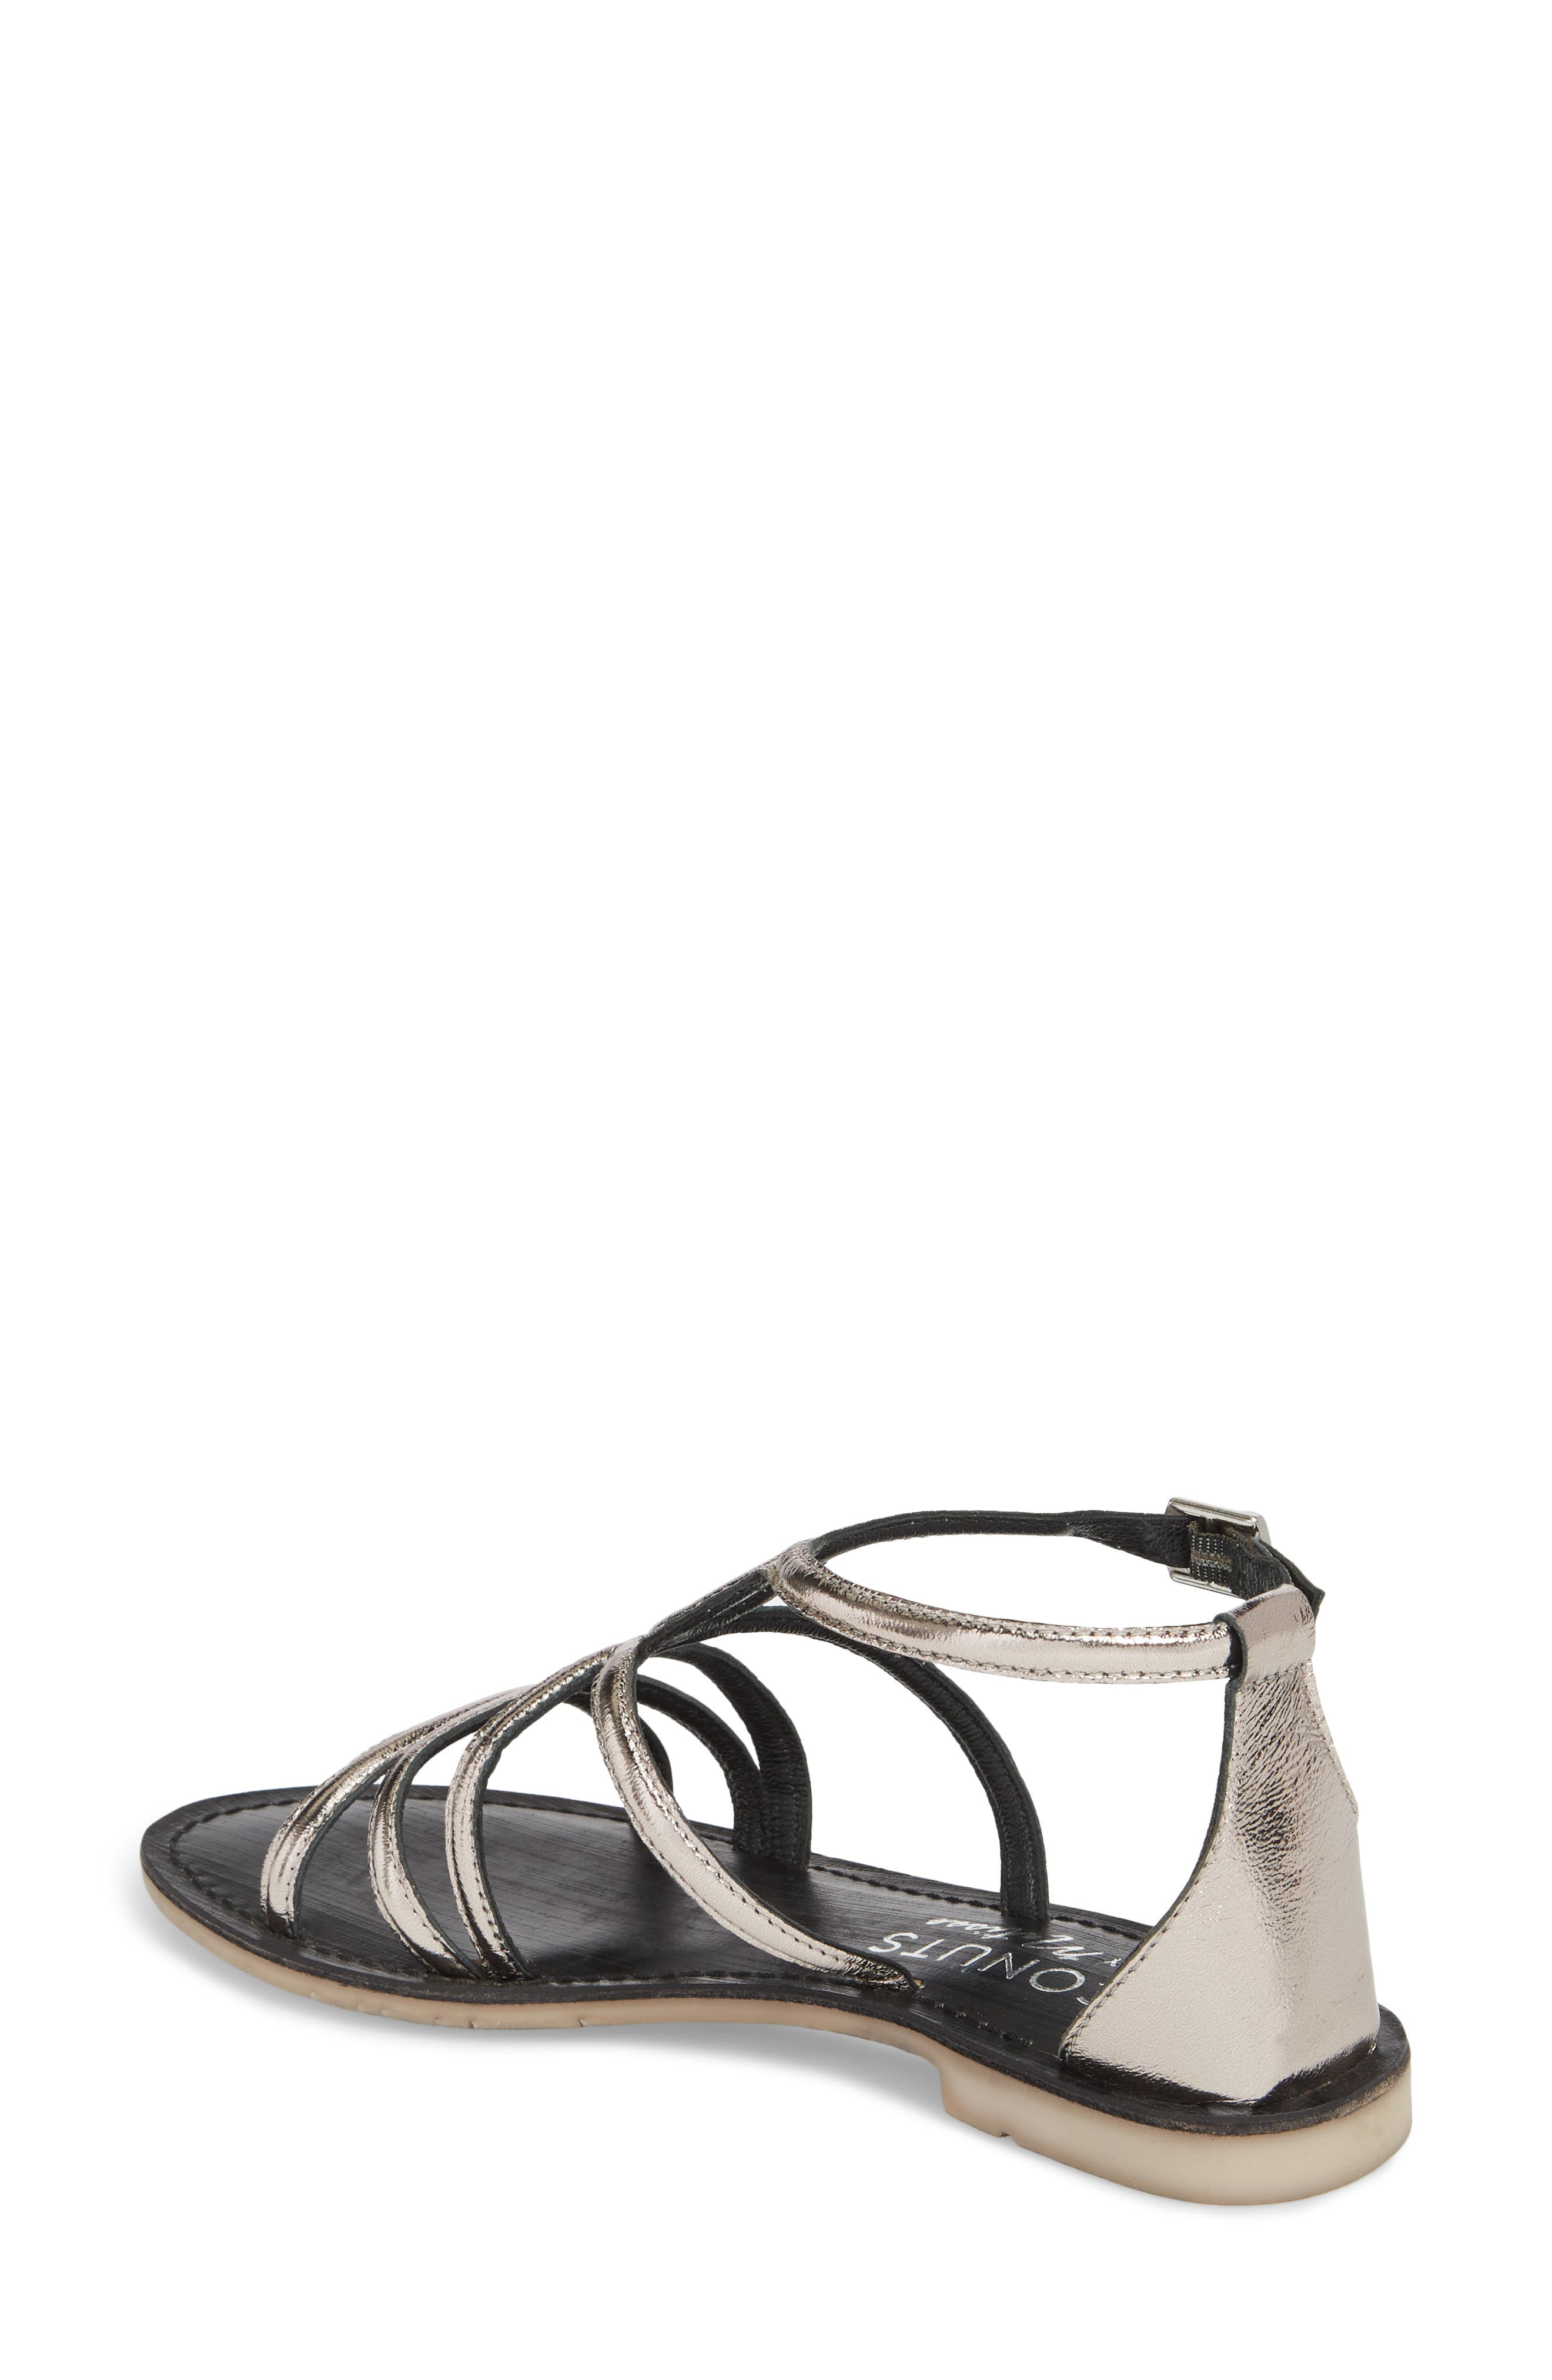 Palm Beach Metallic Sandal,                             Alternate thumbnail 2, color,                             Pewter Leather